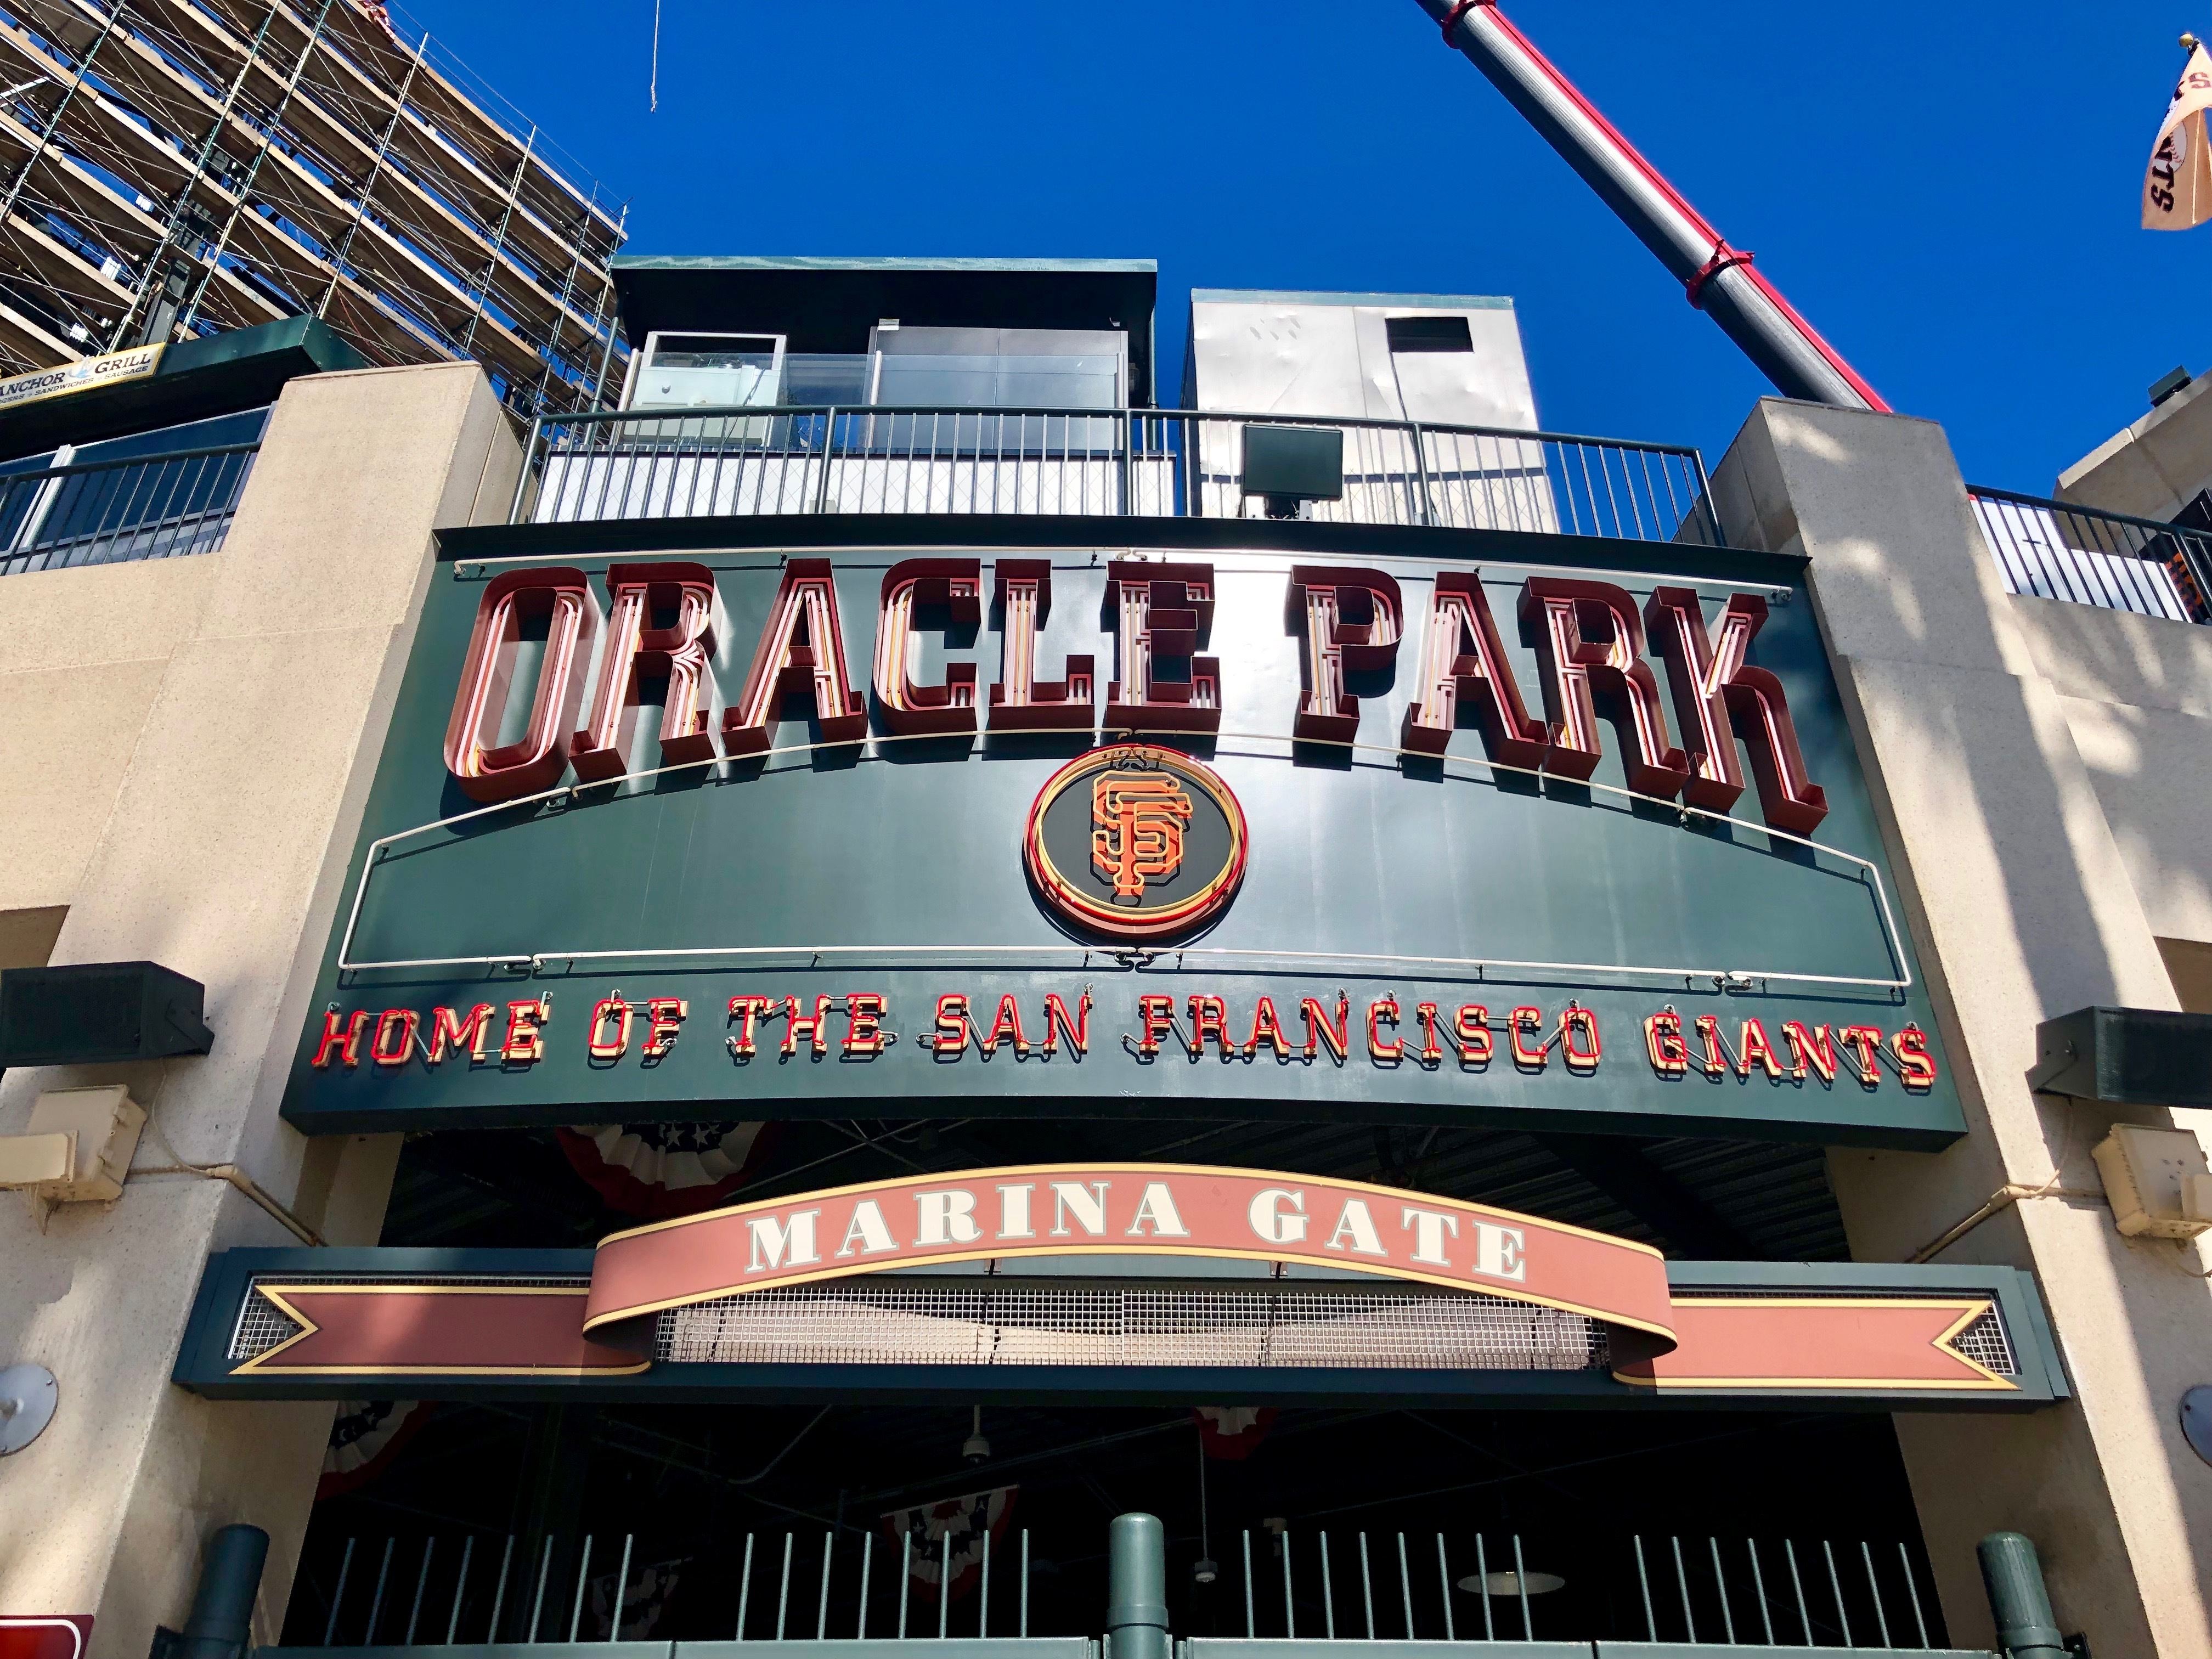 """A low angle photo of a sign reading """"Oracle Park,"""" with the logo of the San Francisco Giants—a stylized letter S and letter F entwined with one another—visible below it."""